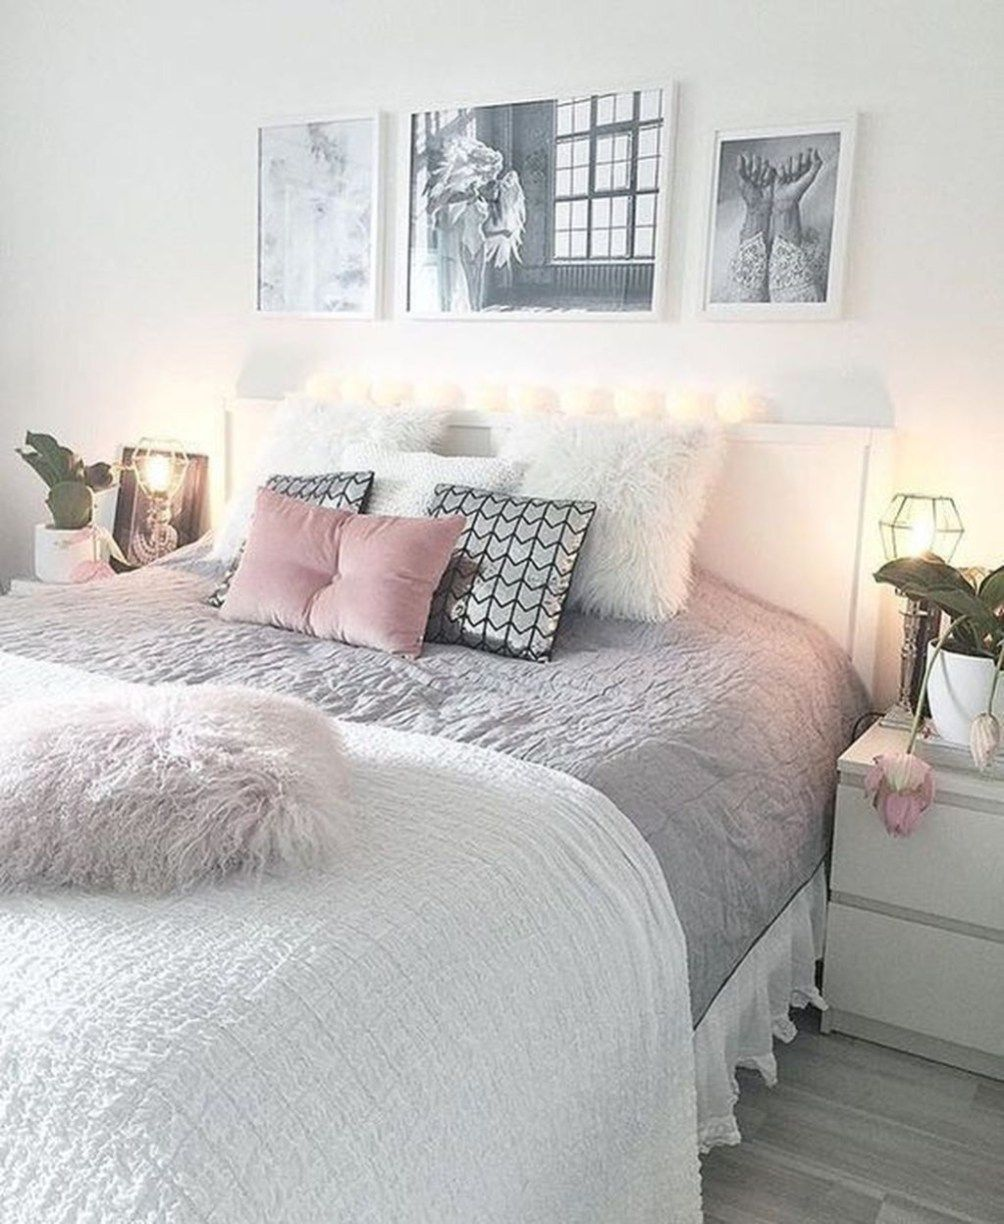 Girly Bedroom Design Ideas: Girly But Unique Girl Bedroom Designs Ideas 15